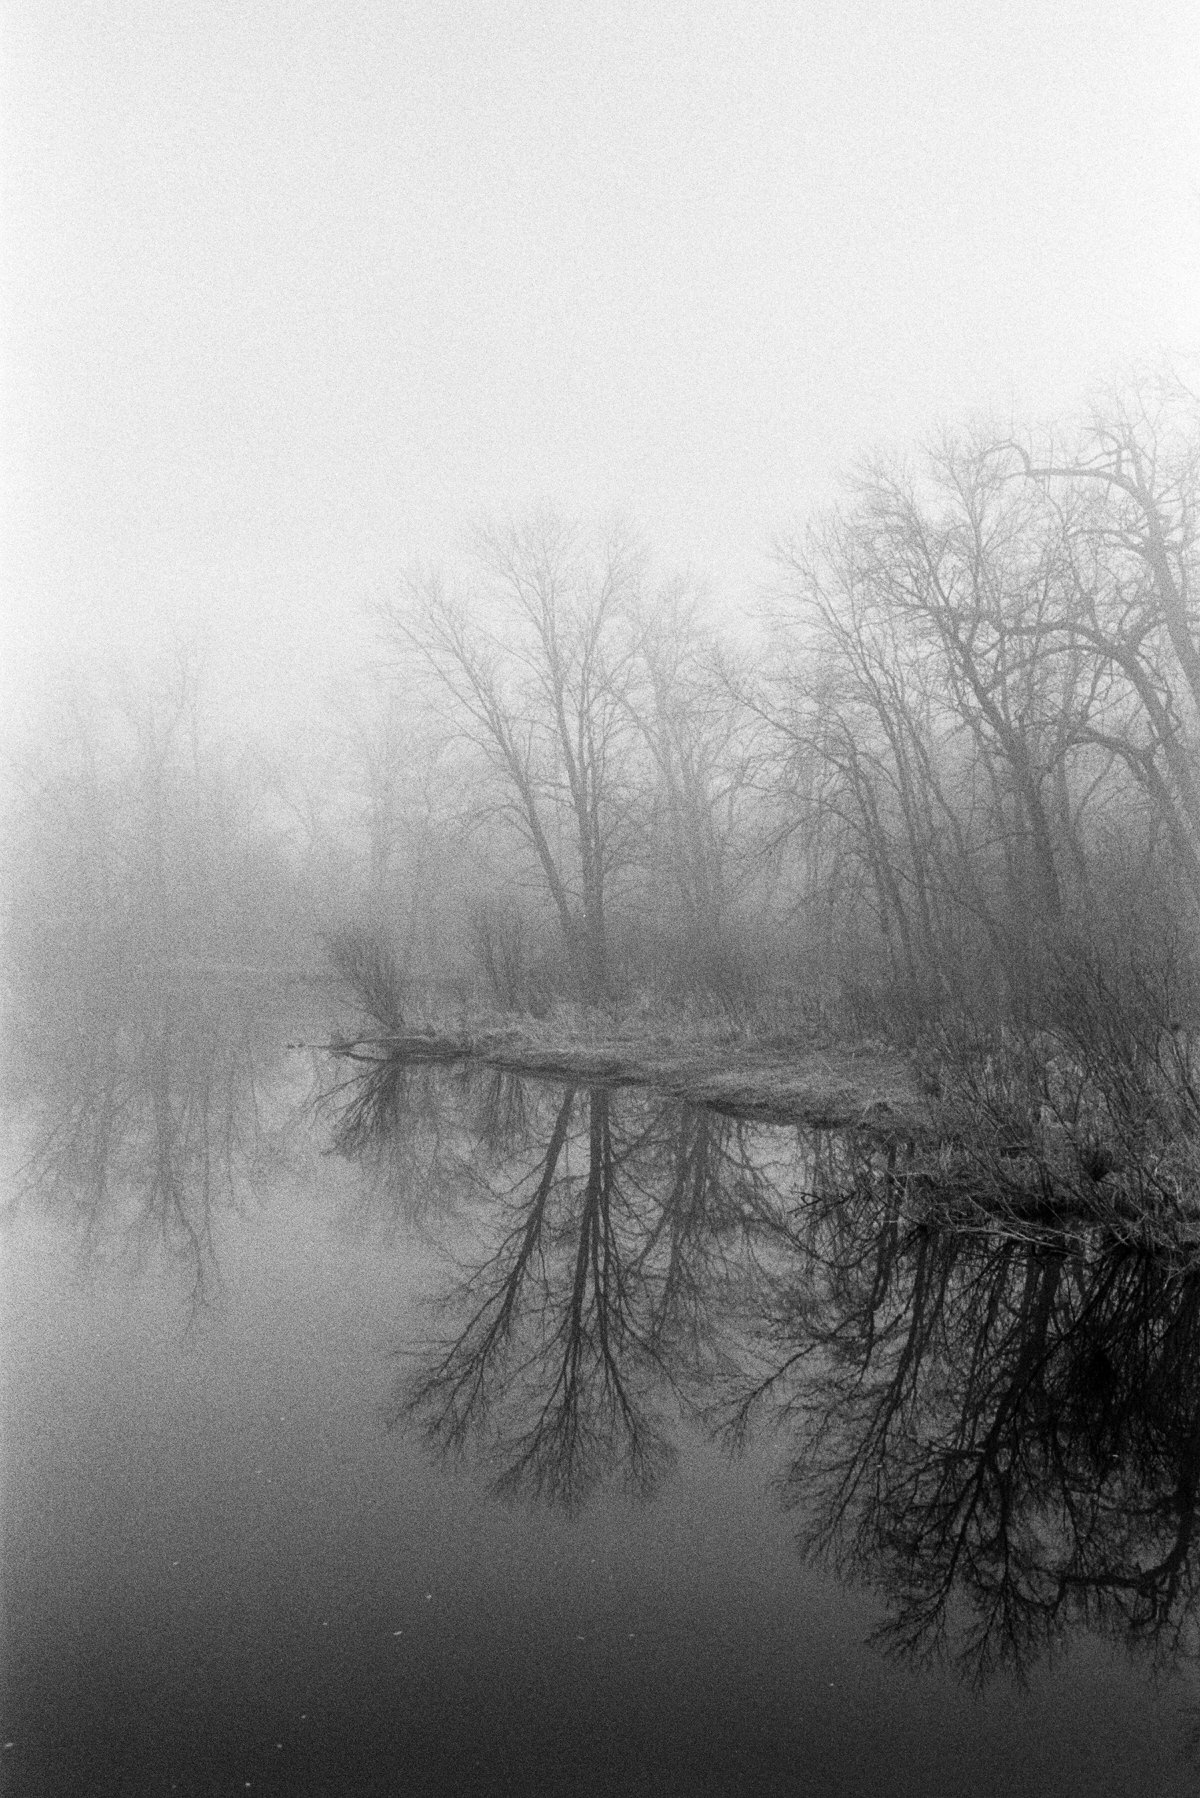 Midwest-Fog-black-and-white-fine-art-film-photography-by-Studio-L-photographer-Laura-Schneider-_010